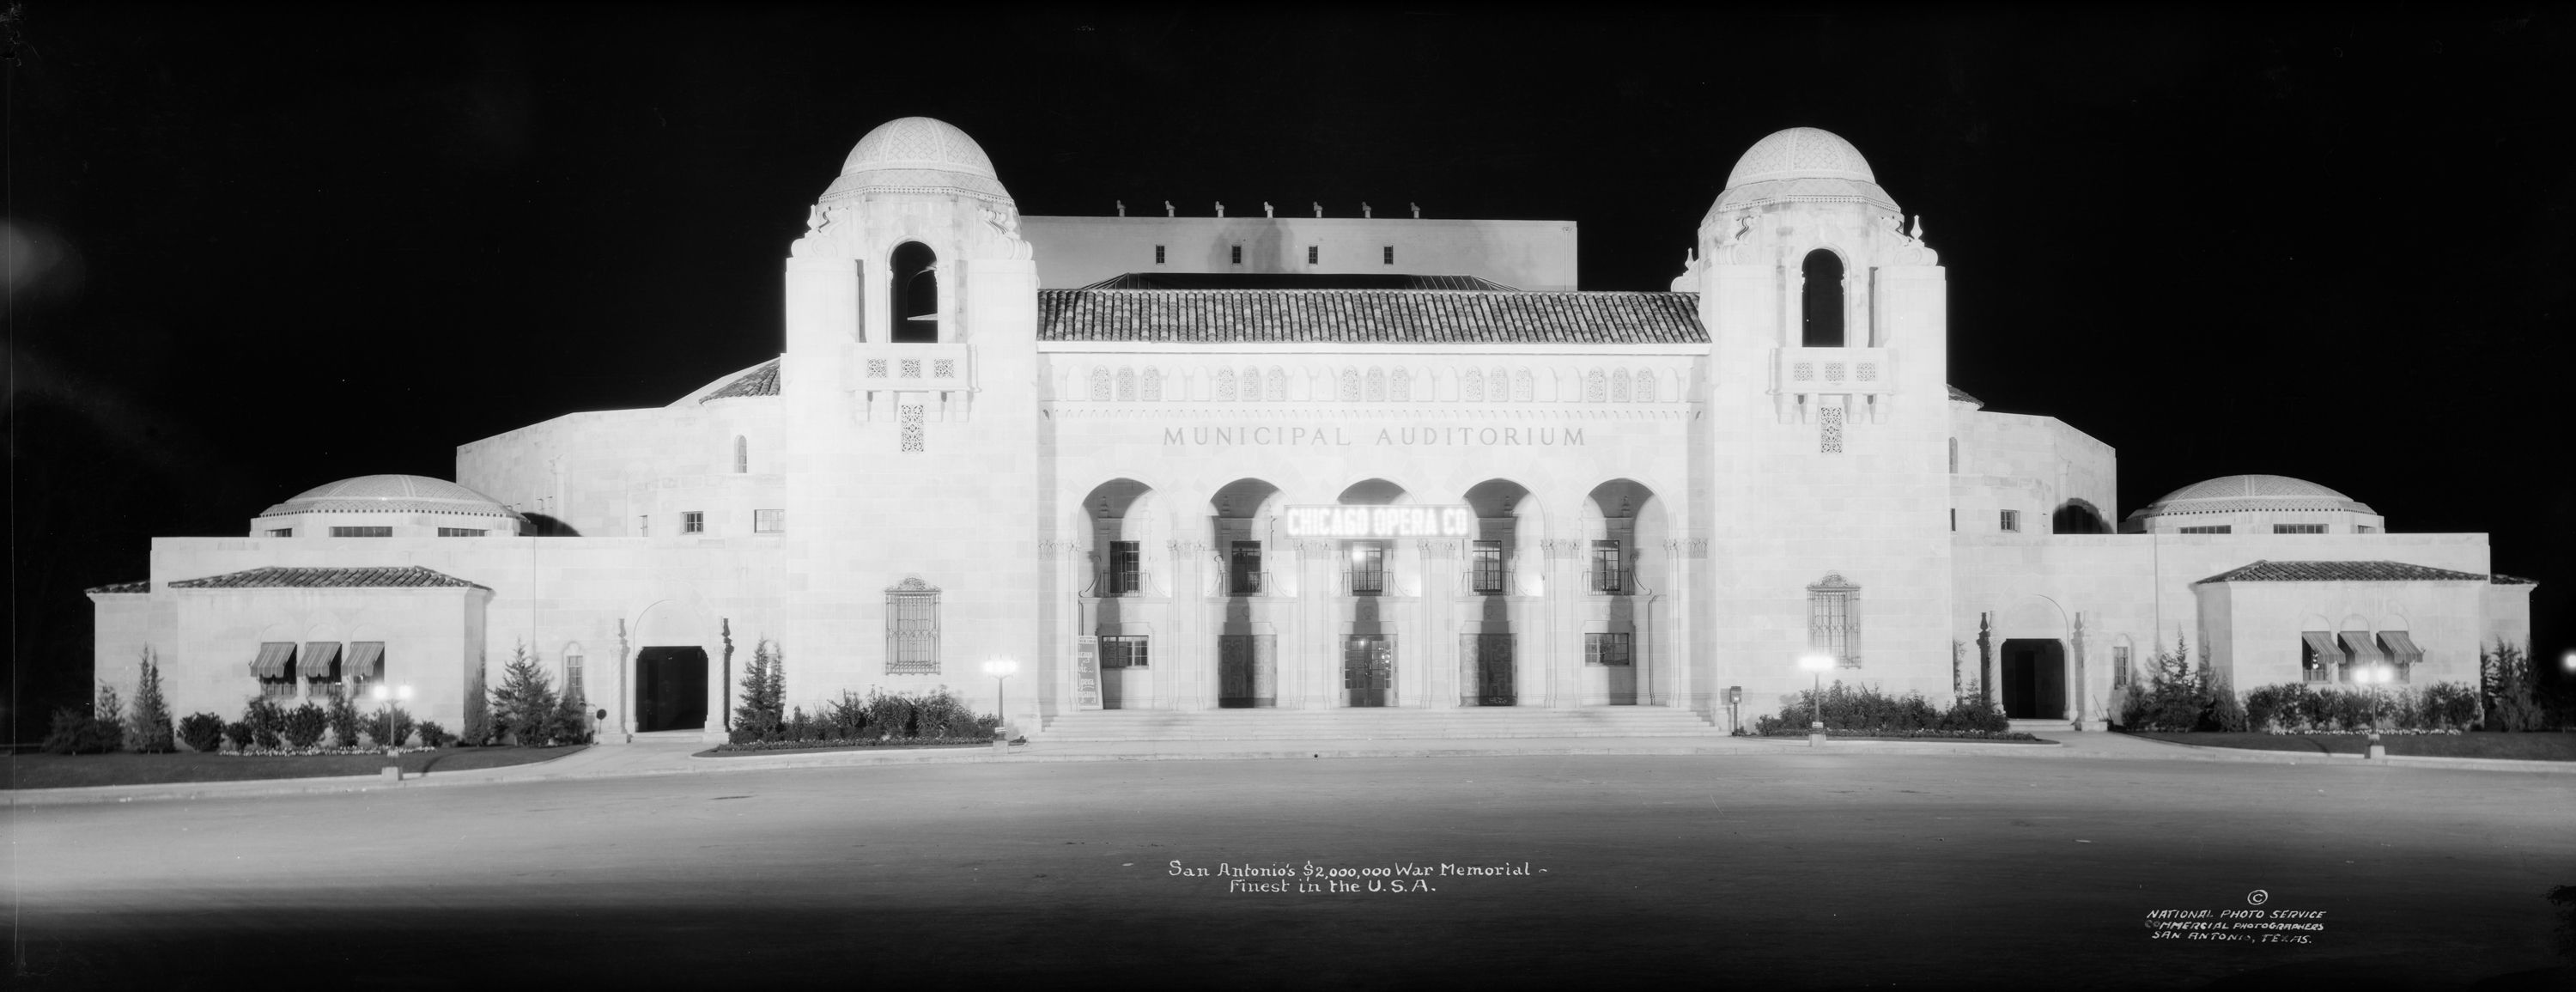 E. O. (Eugene Omar) Goldbeck (American, 1892–1986), San Antonio's $2,000,000 War Memorial. Finest in the U.S. A., ca. 1926. Digital positive from nitrate negative, 19.6 x 49.9 cm. E. O. Goldbeck papers and photography collection, 967:0068:0092